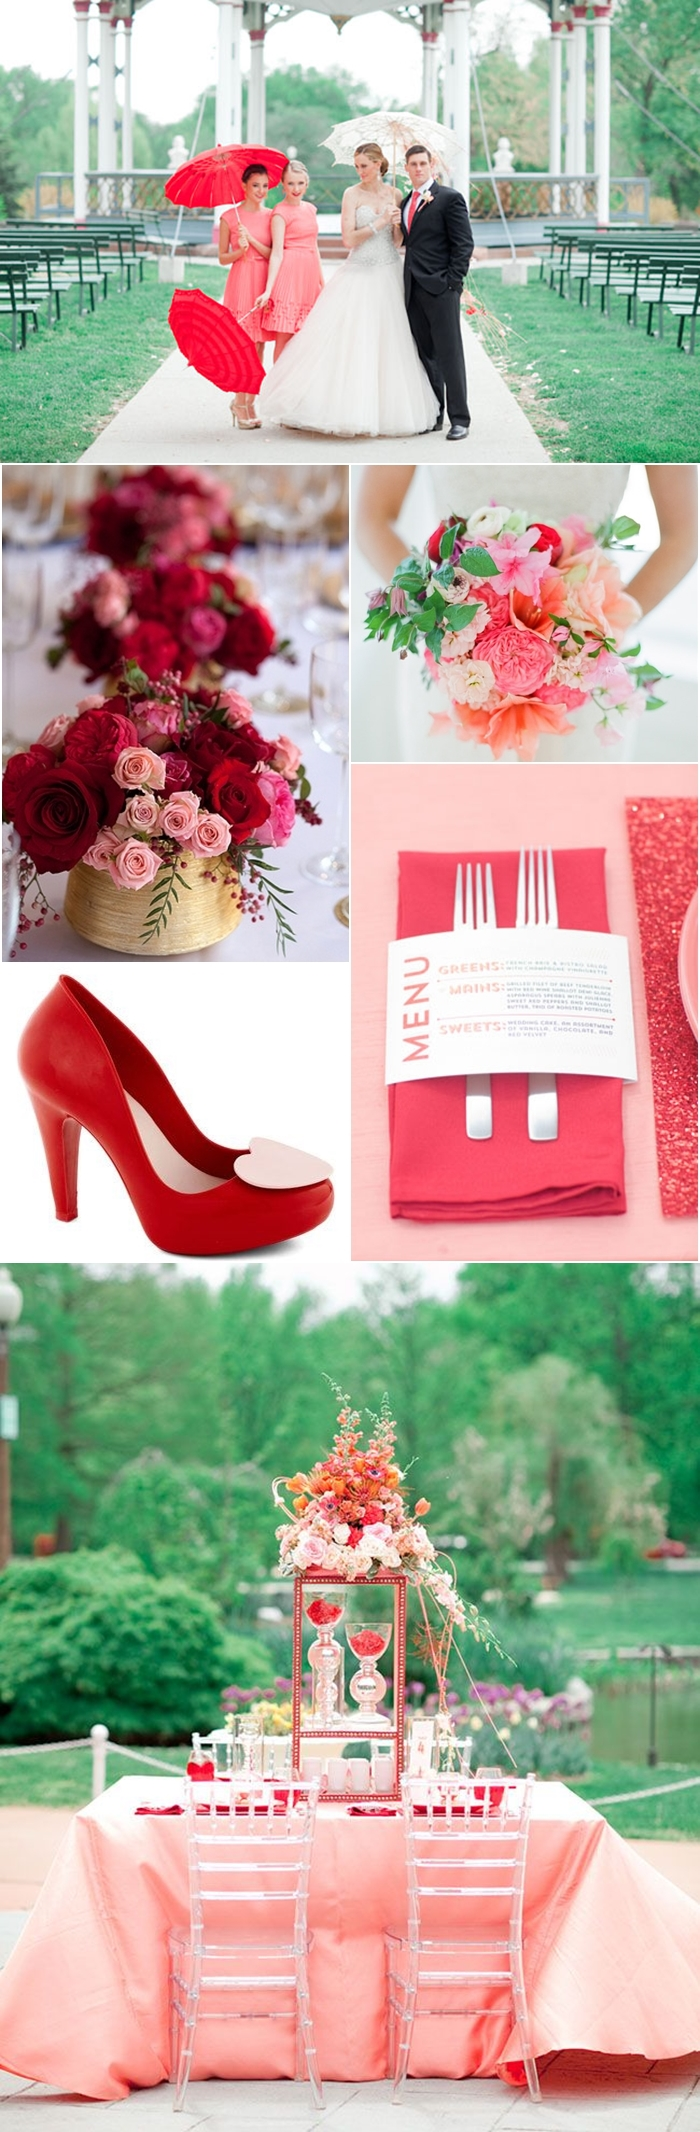 Couple with the Bridal Party / Flower Table Centerpiece / Bouquet / Place Card Menu / Shoe of Hearts Heel in Red / Reception Table Decor and Centerpiece